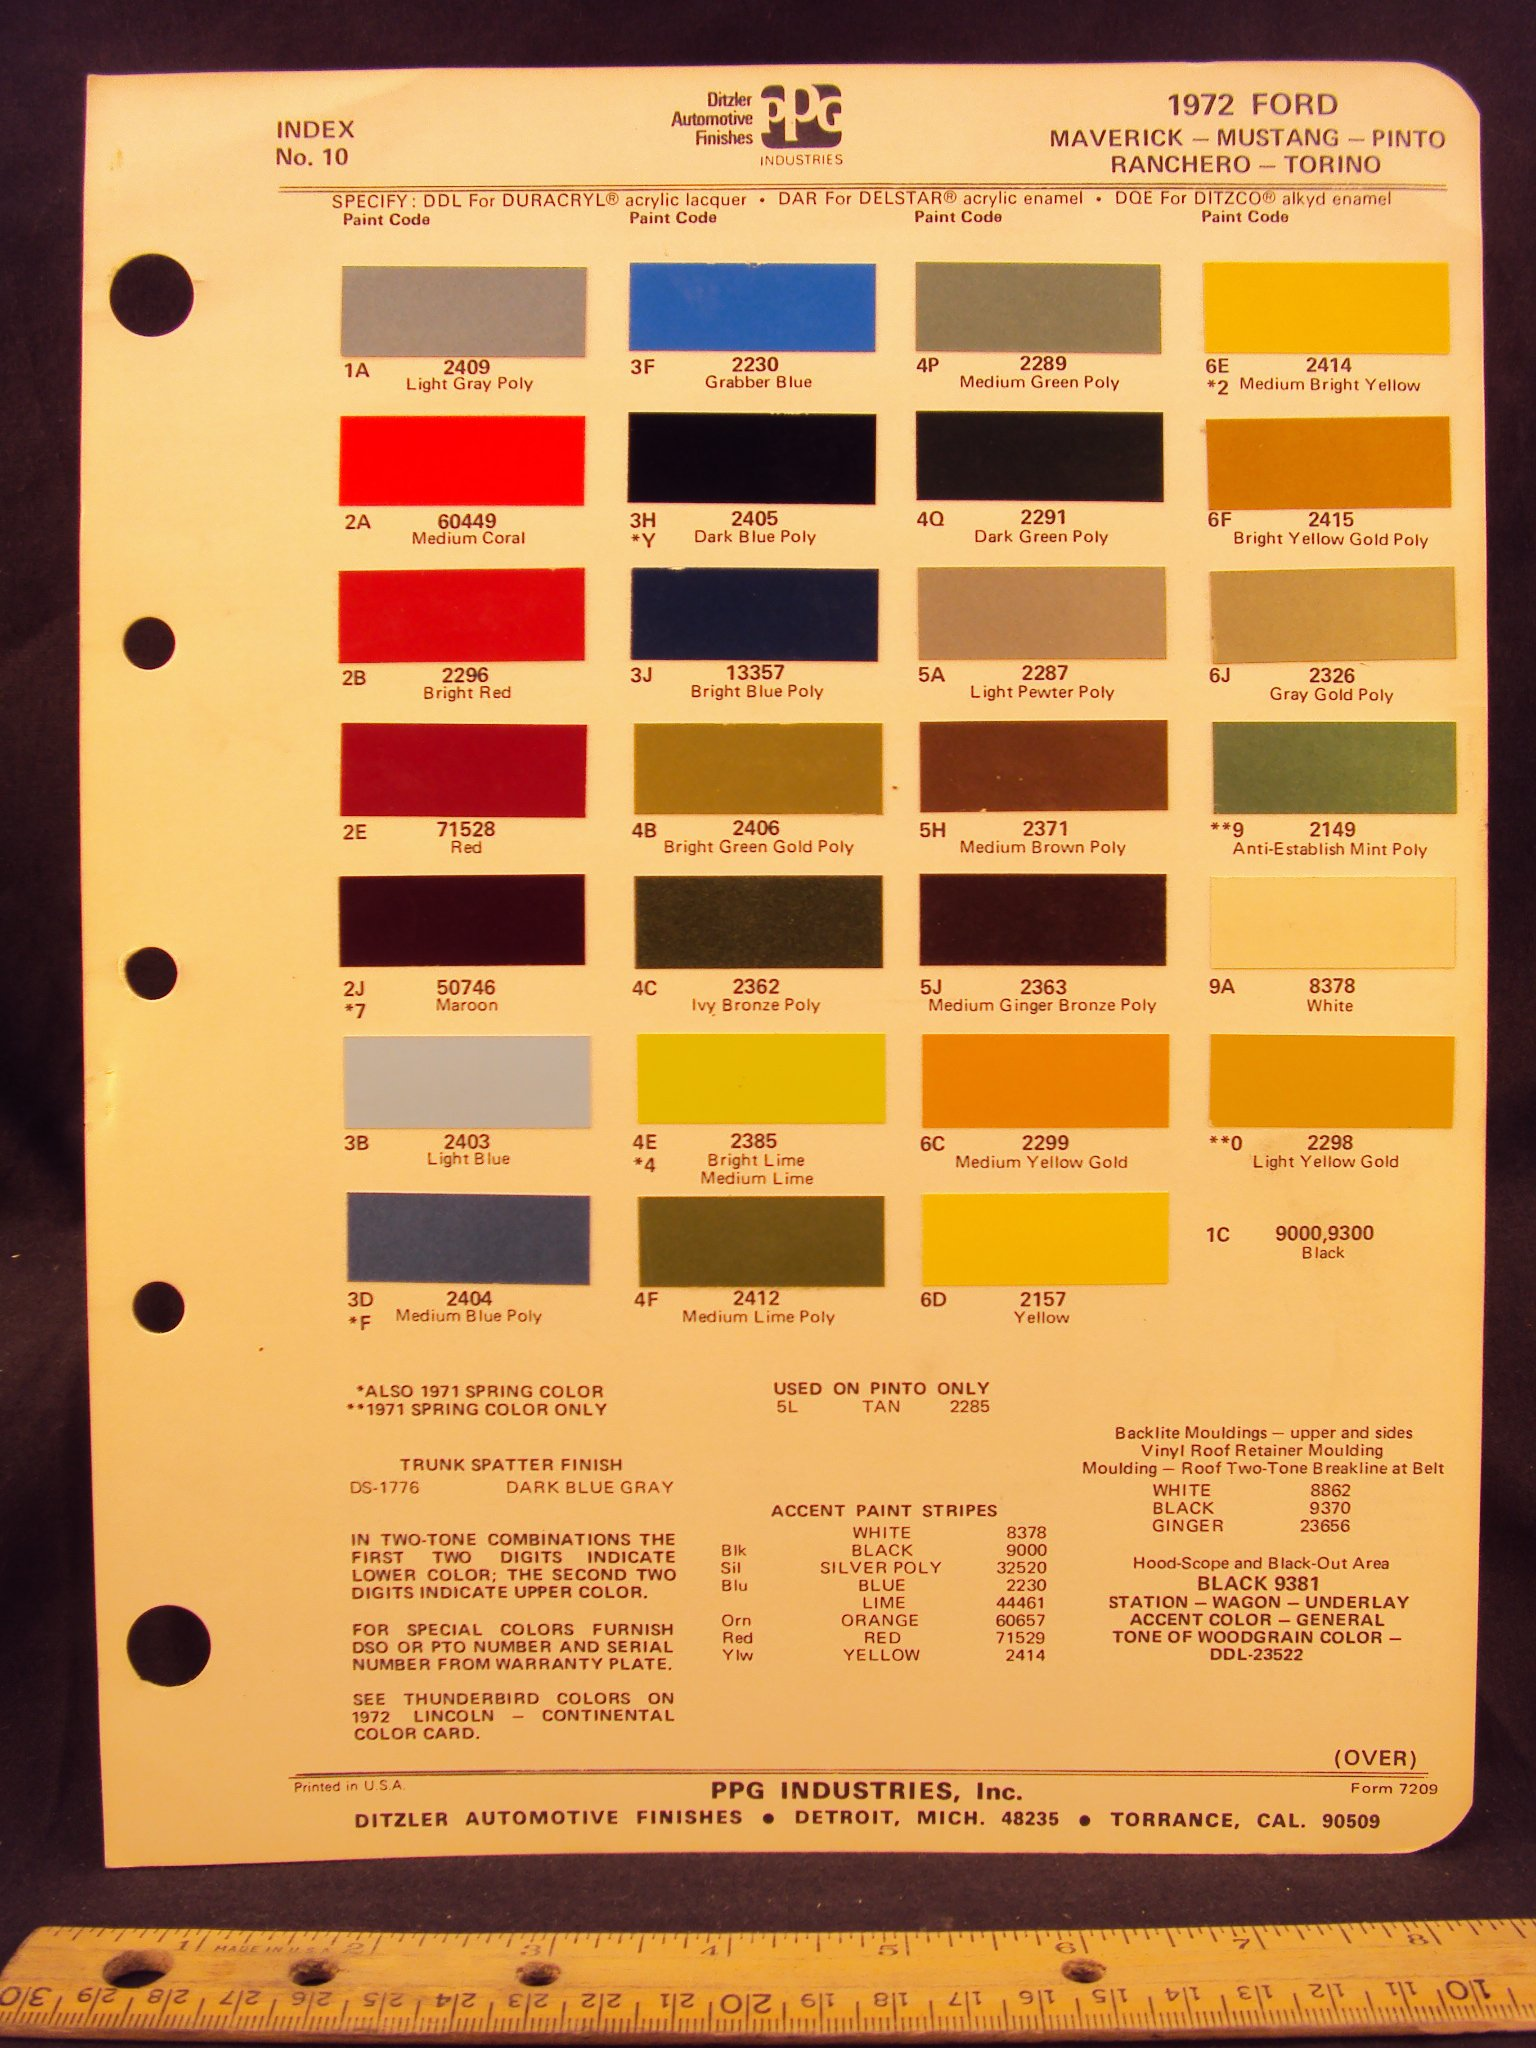 1972 ford maverick mustang pinto ranchero torino paint colors chip page loose leaf january 1 1972